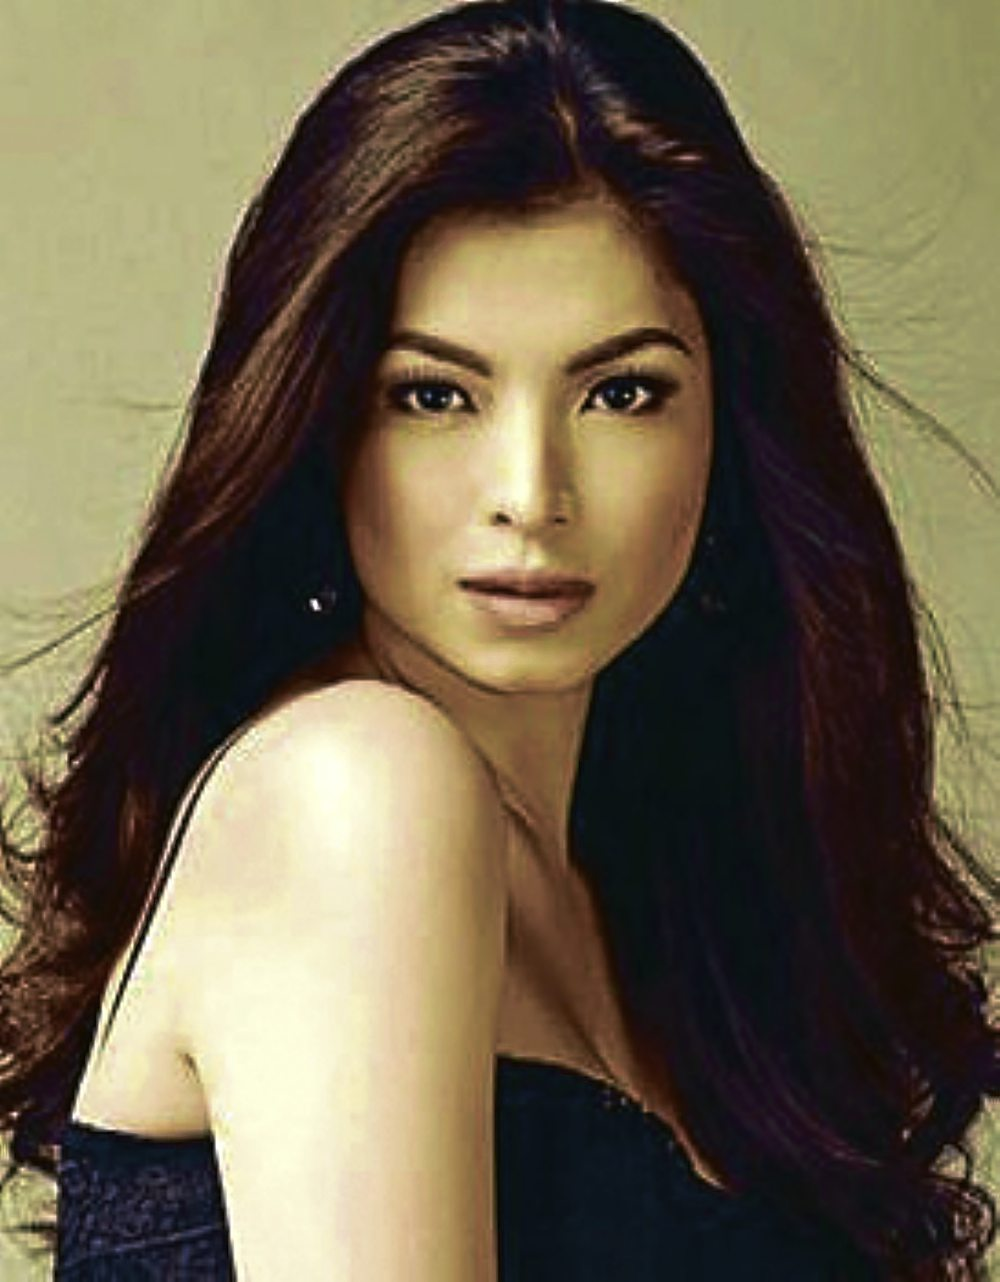 Philippines Models Gallery: Angel Locsin Profile